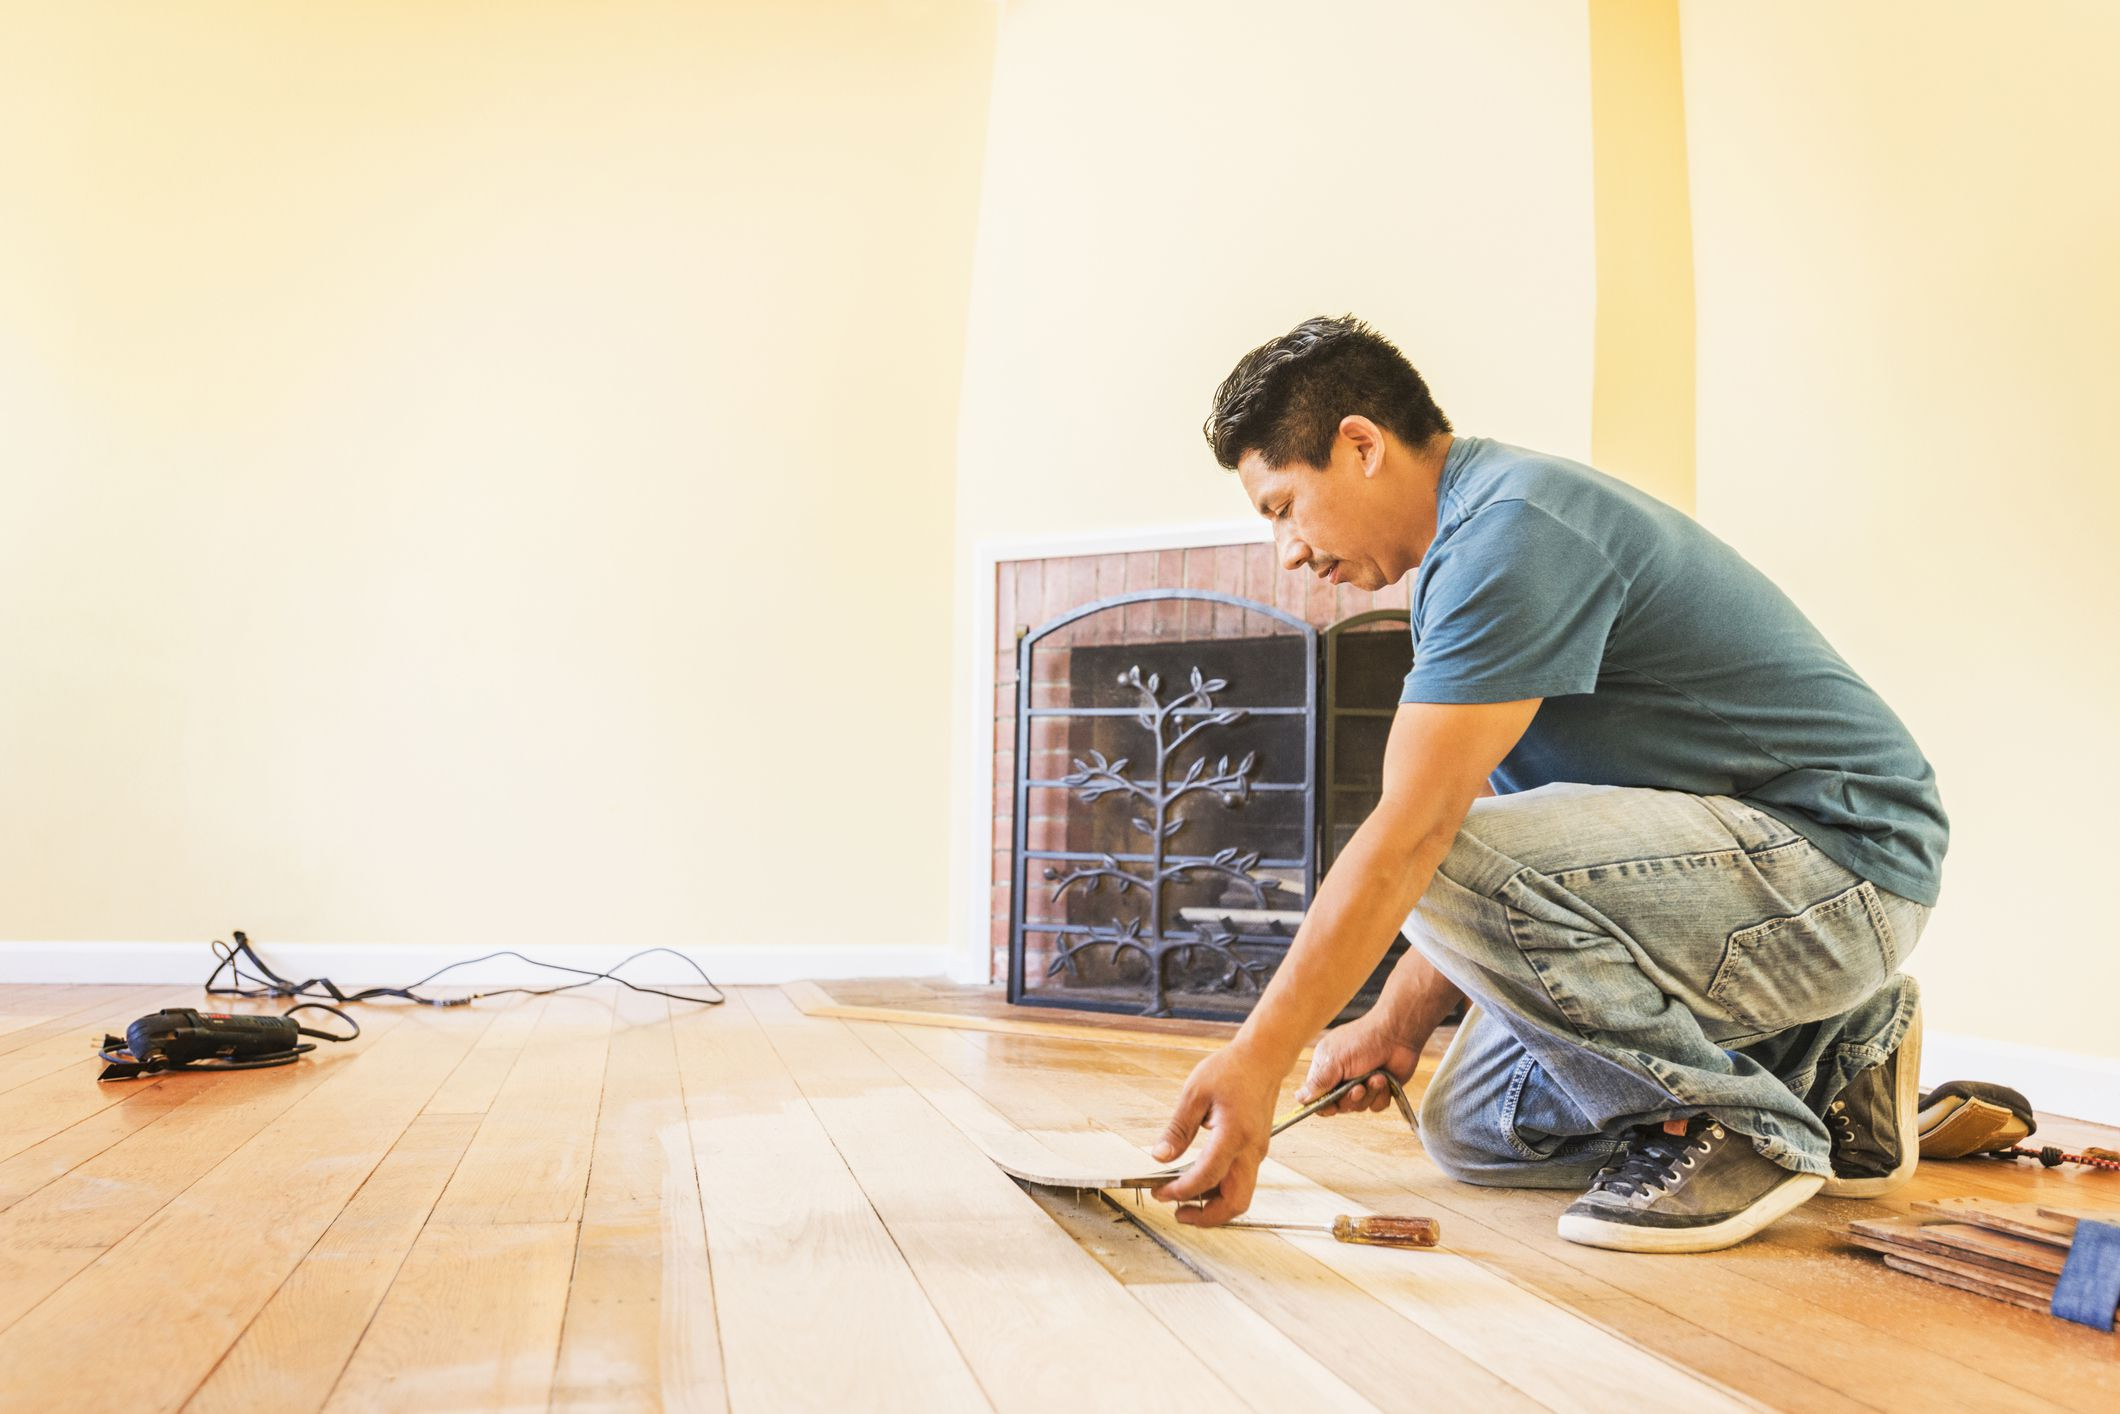 engineered hardwood flooring installation tools of hardwood installer how to hire and what to expect in installing wood flooring 592016327 57af51a23df78cd39cfa08d9